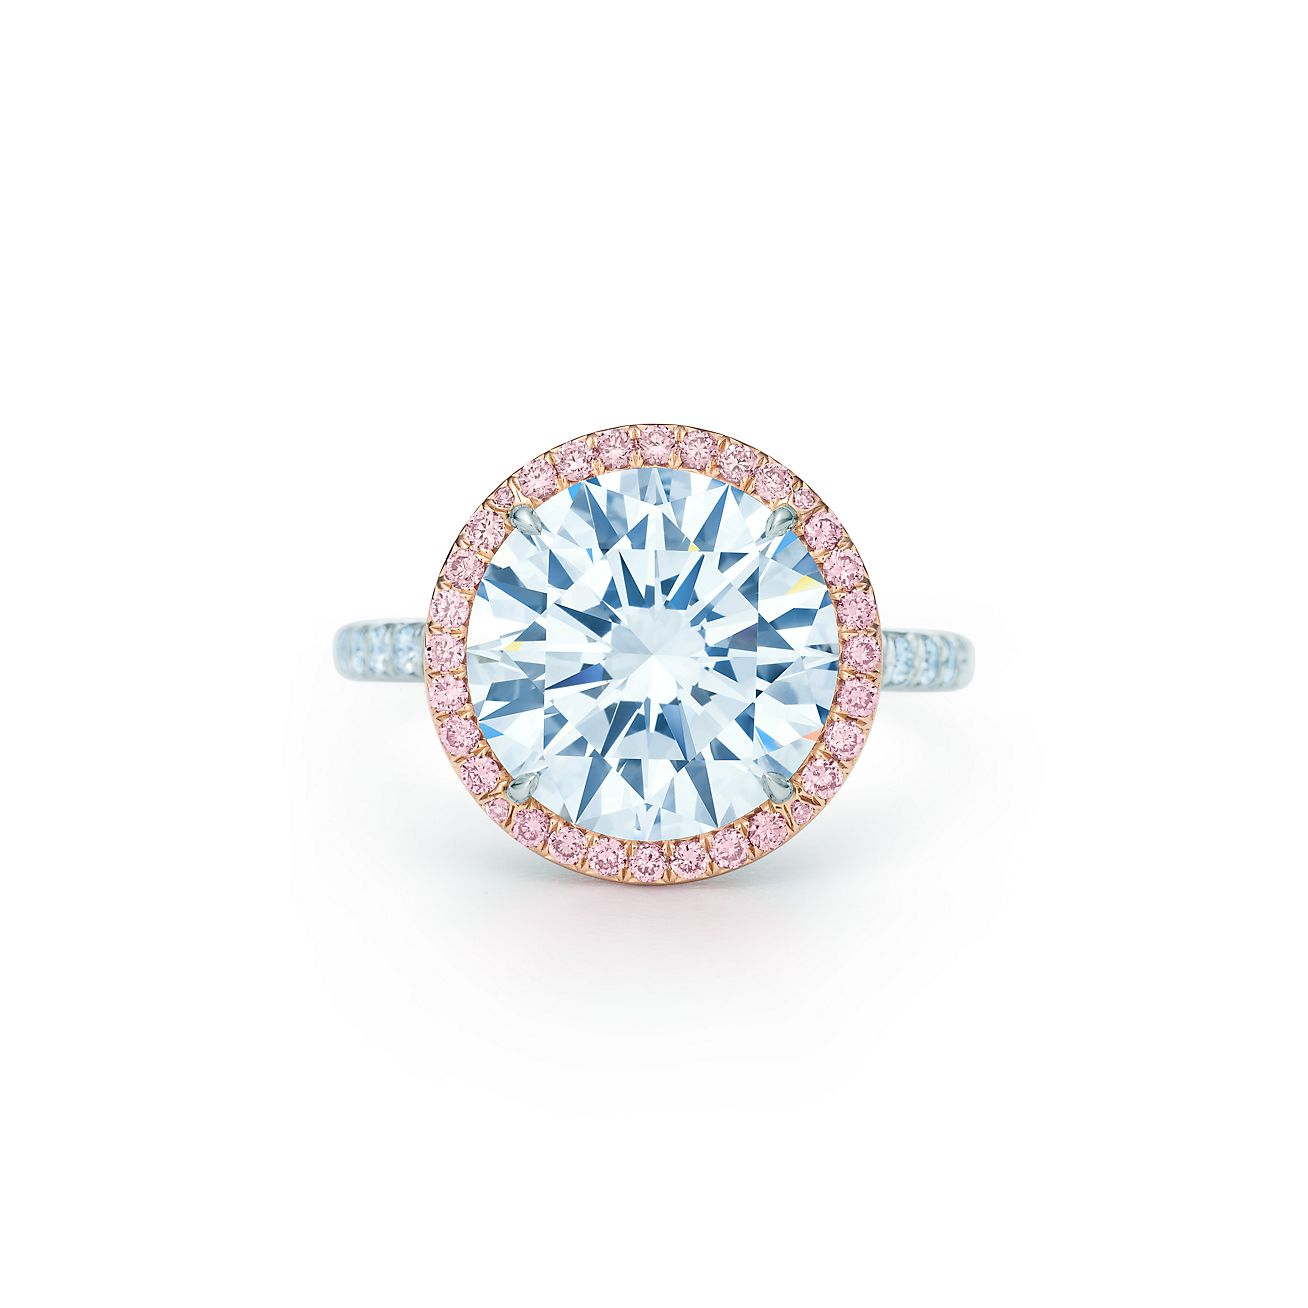 New Tiffany Soleste Diamond Ring In Platinum With White And Fancy Pink  Diamonds